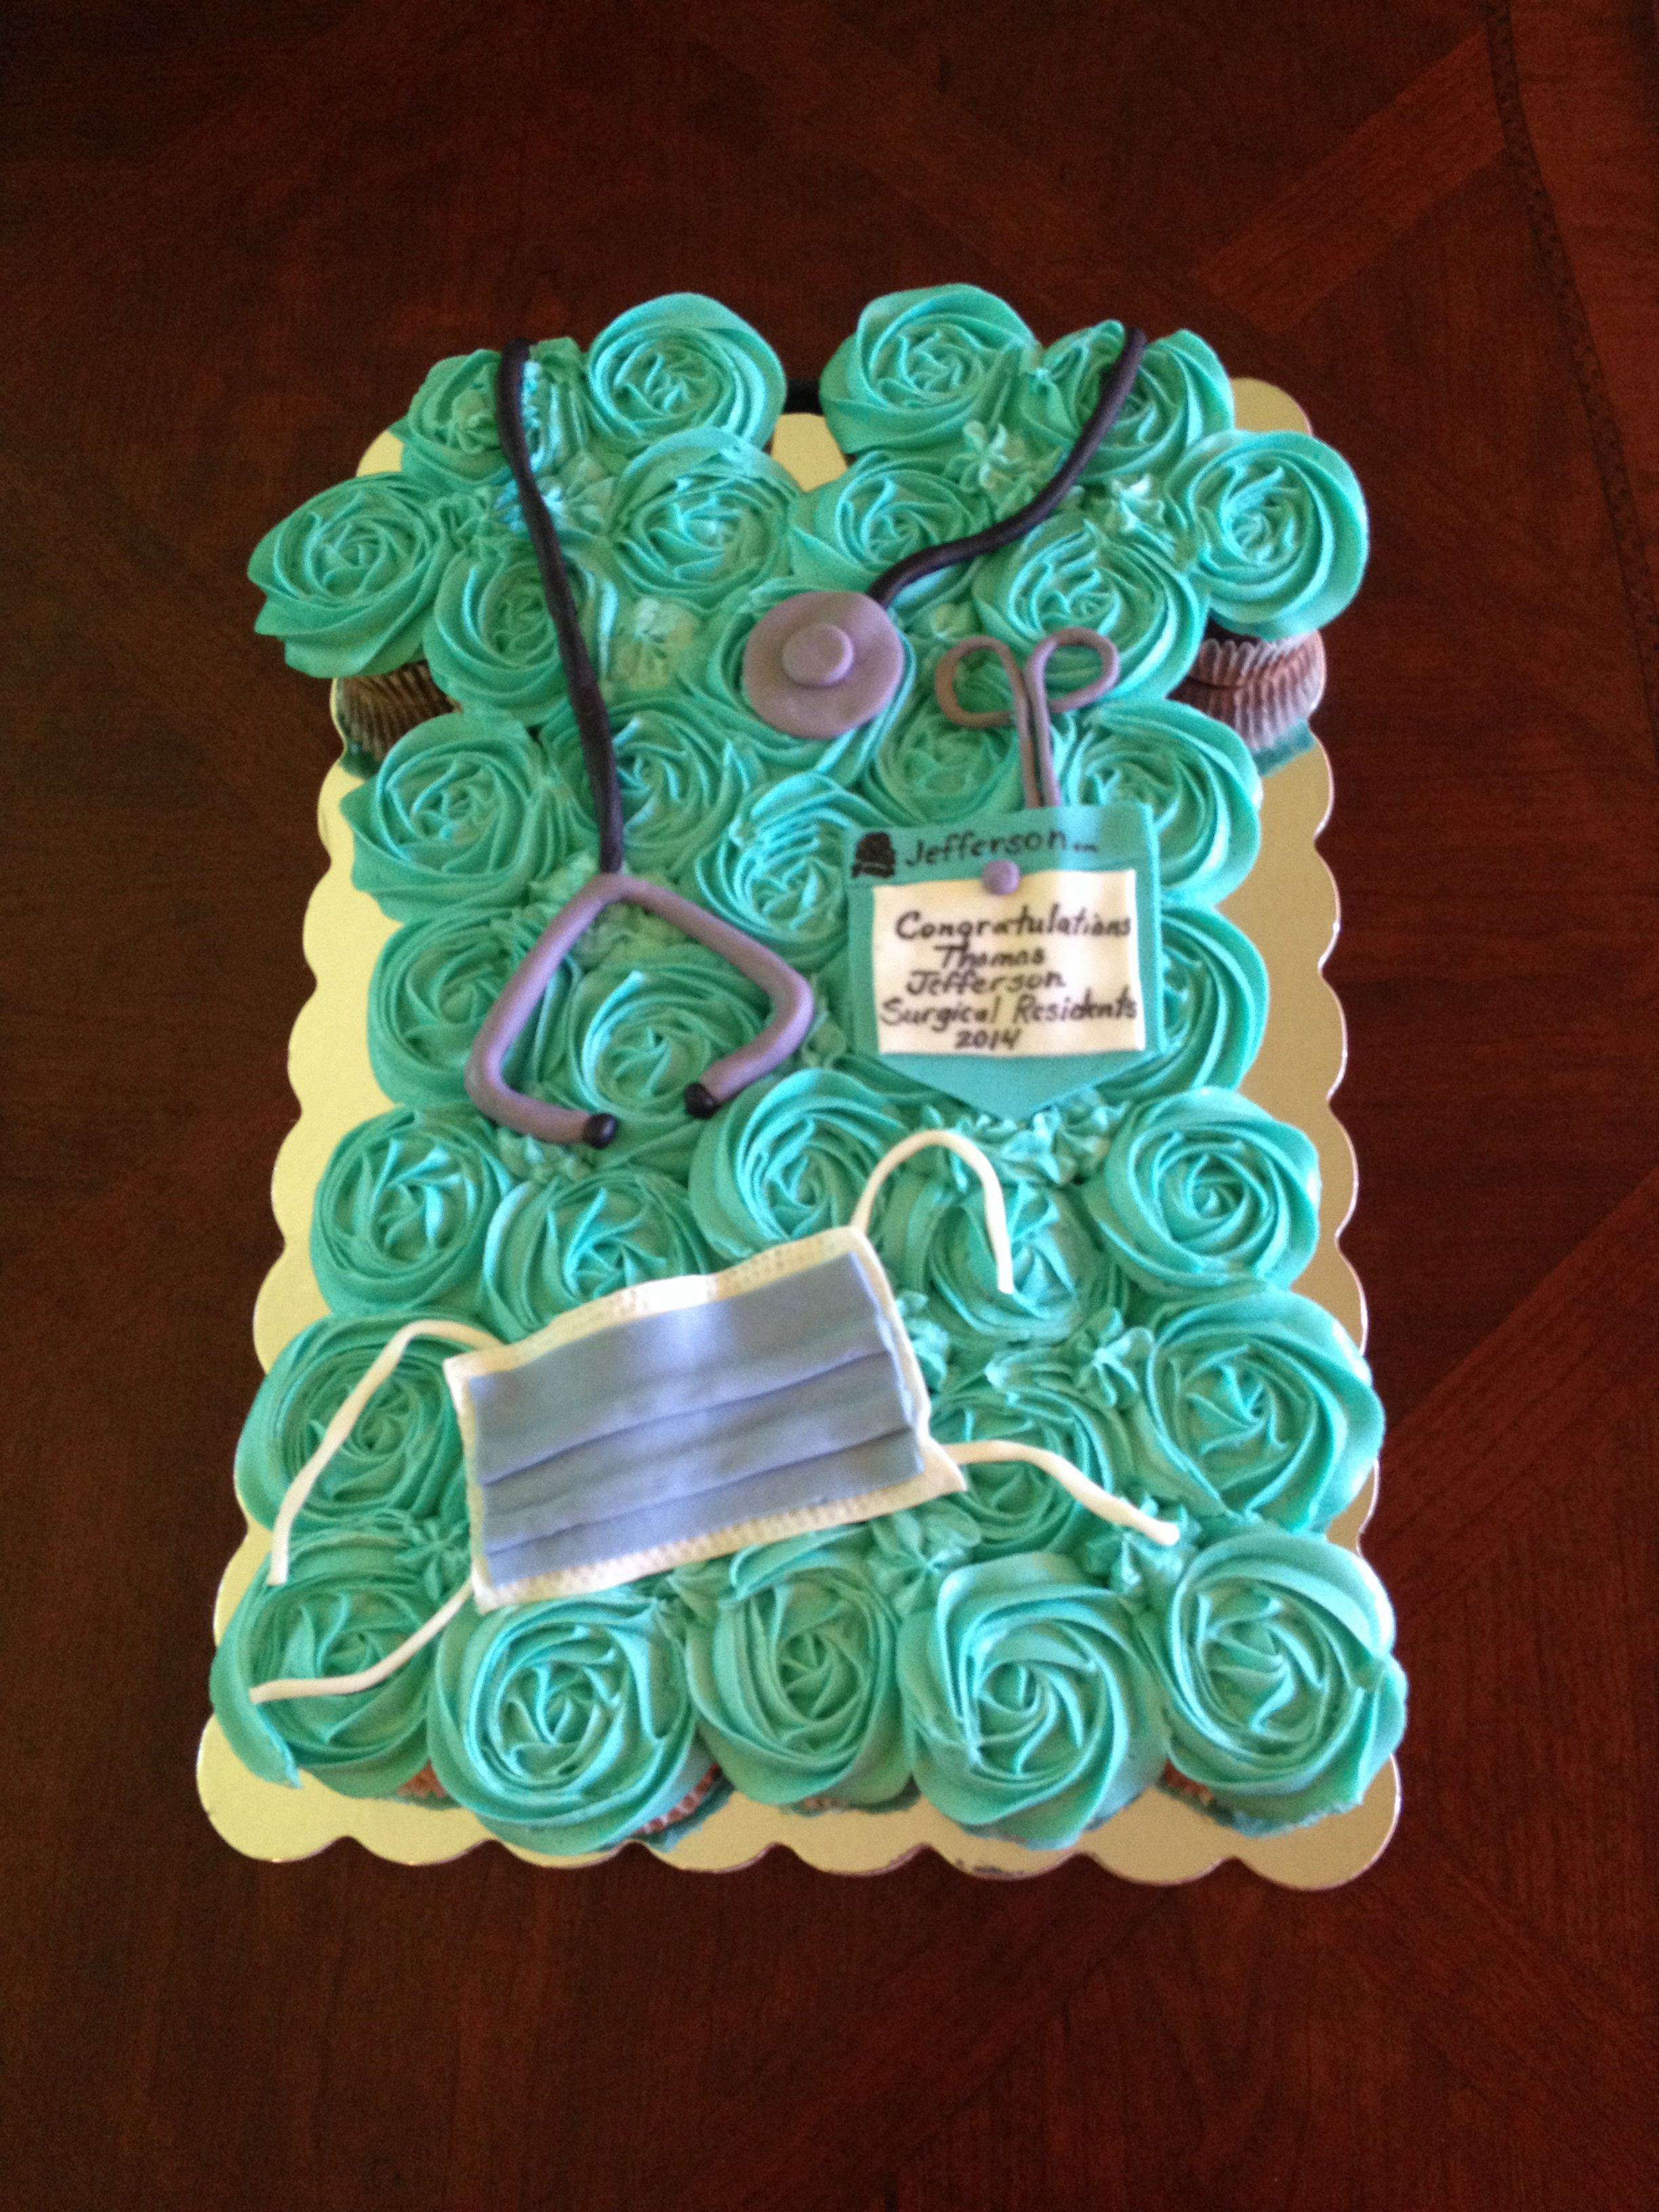 Surgical Cake